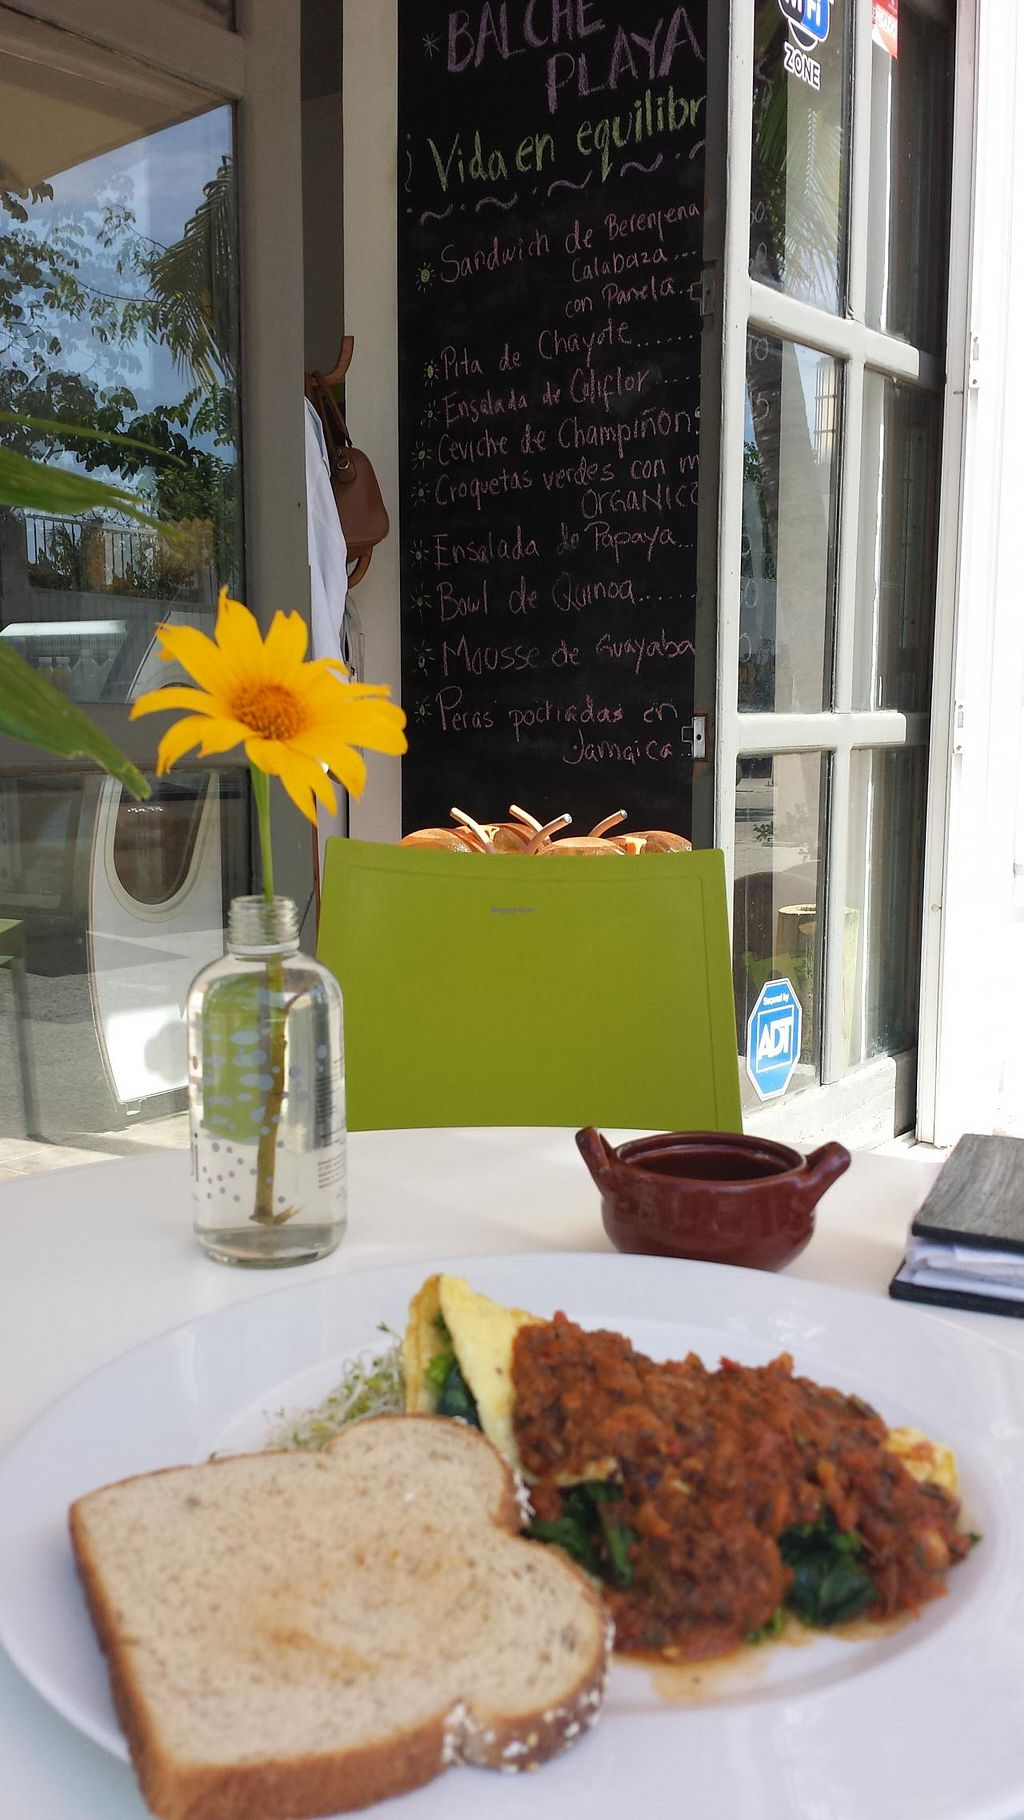 """Photo of CLOSED: Balche Playa  by <a href=""""/members/profile/balcheplaya"""">balcheplaya</a> <br/>Organic vegetables Omelette, great way to start your day <br/> March 29, 2015  - <a href='/contact/abuse/image/56941/97284'>Report</a>"""